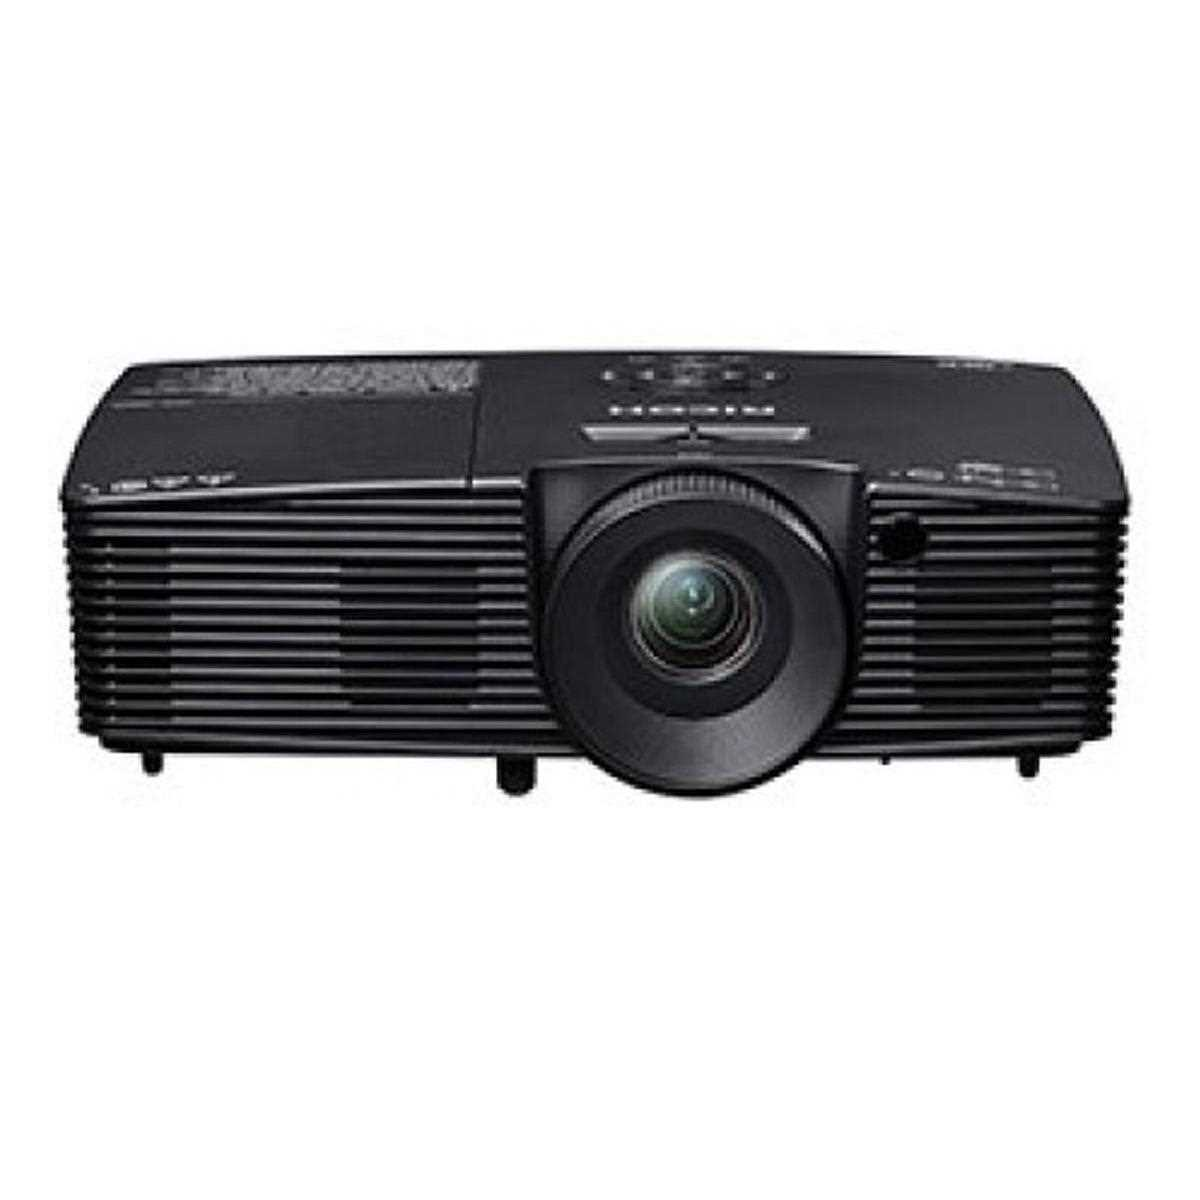 e06fe6e947f480 Egate i9 Projector Price {24 Jul 2019}   i9 Reviews and Specifications